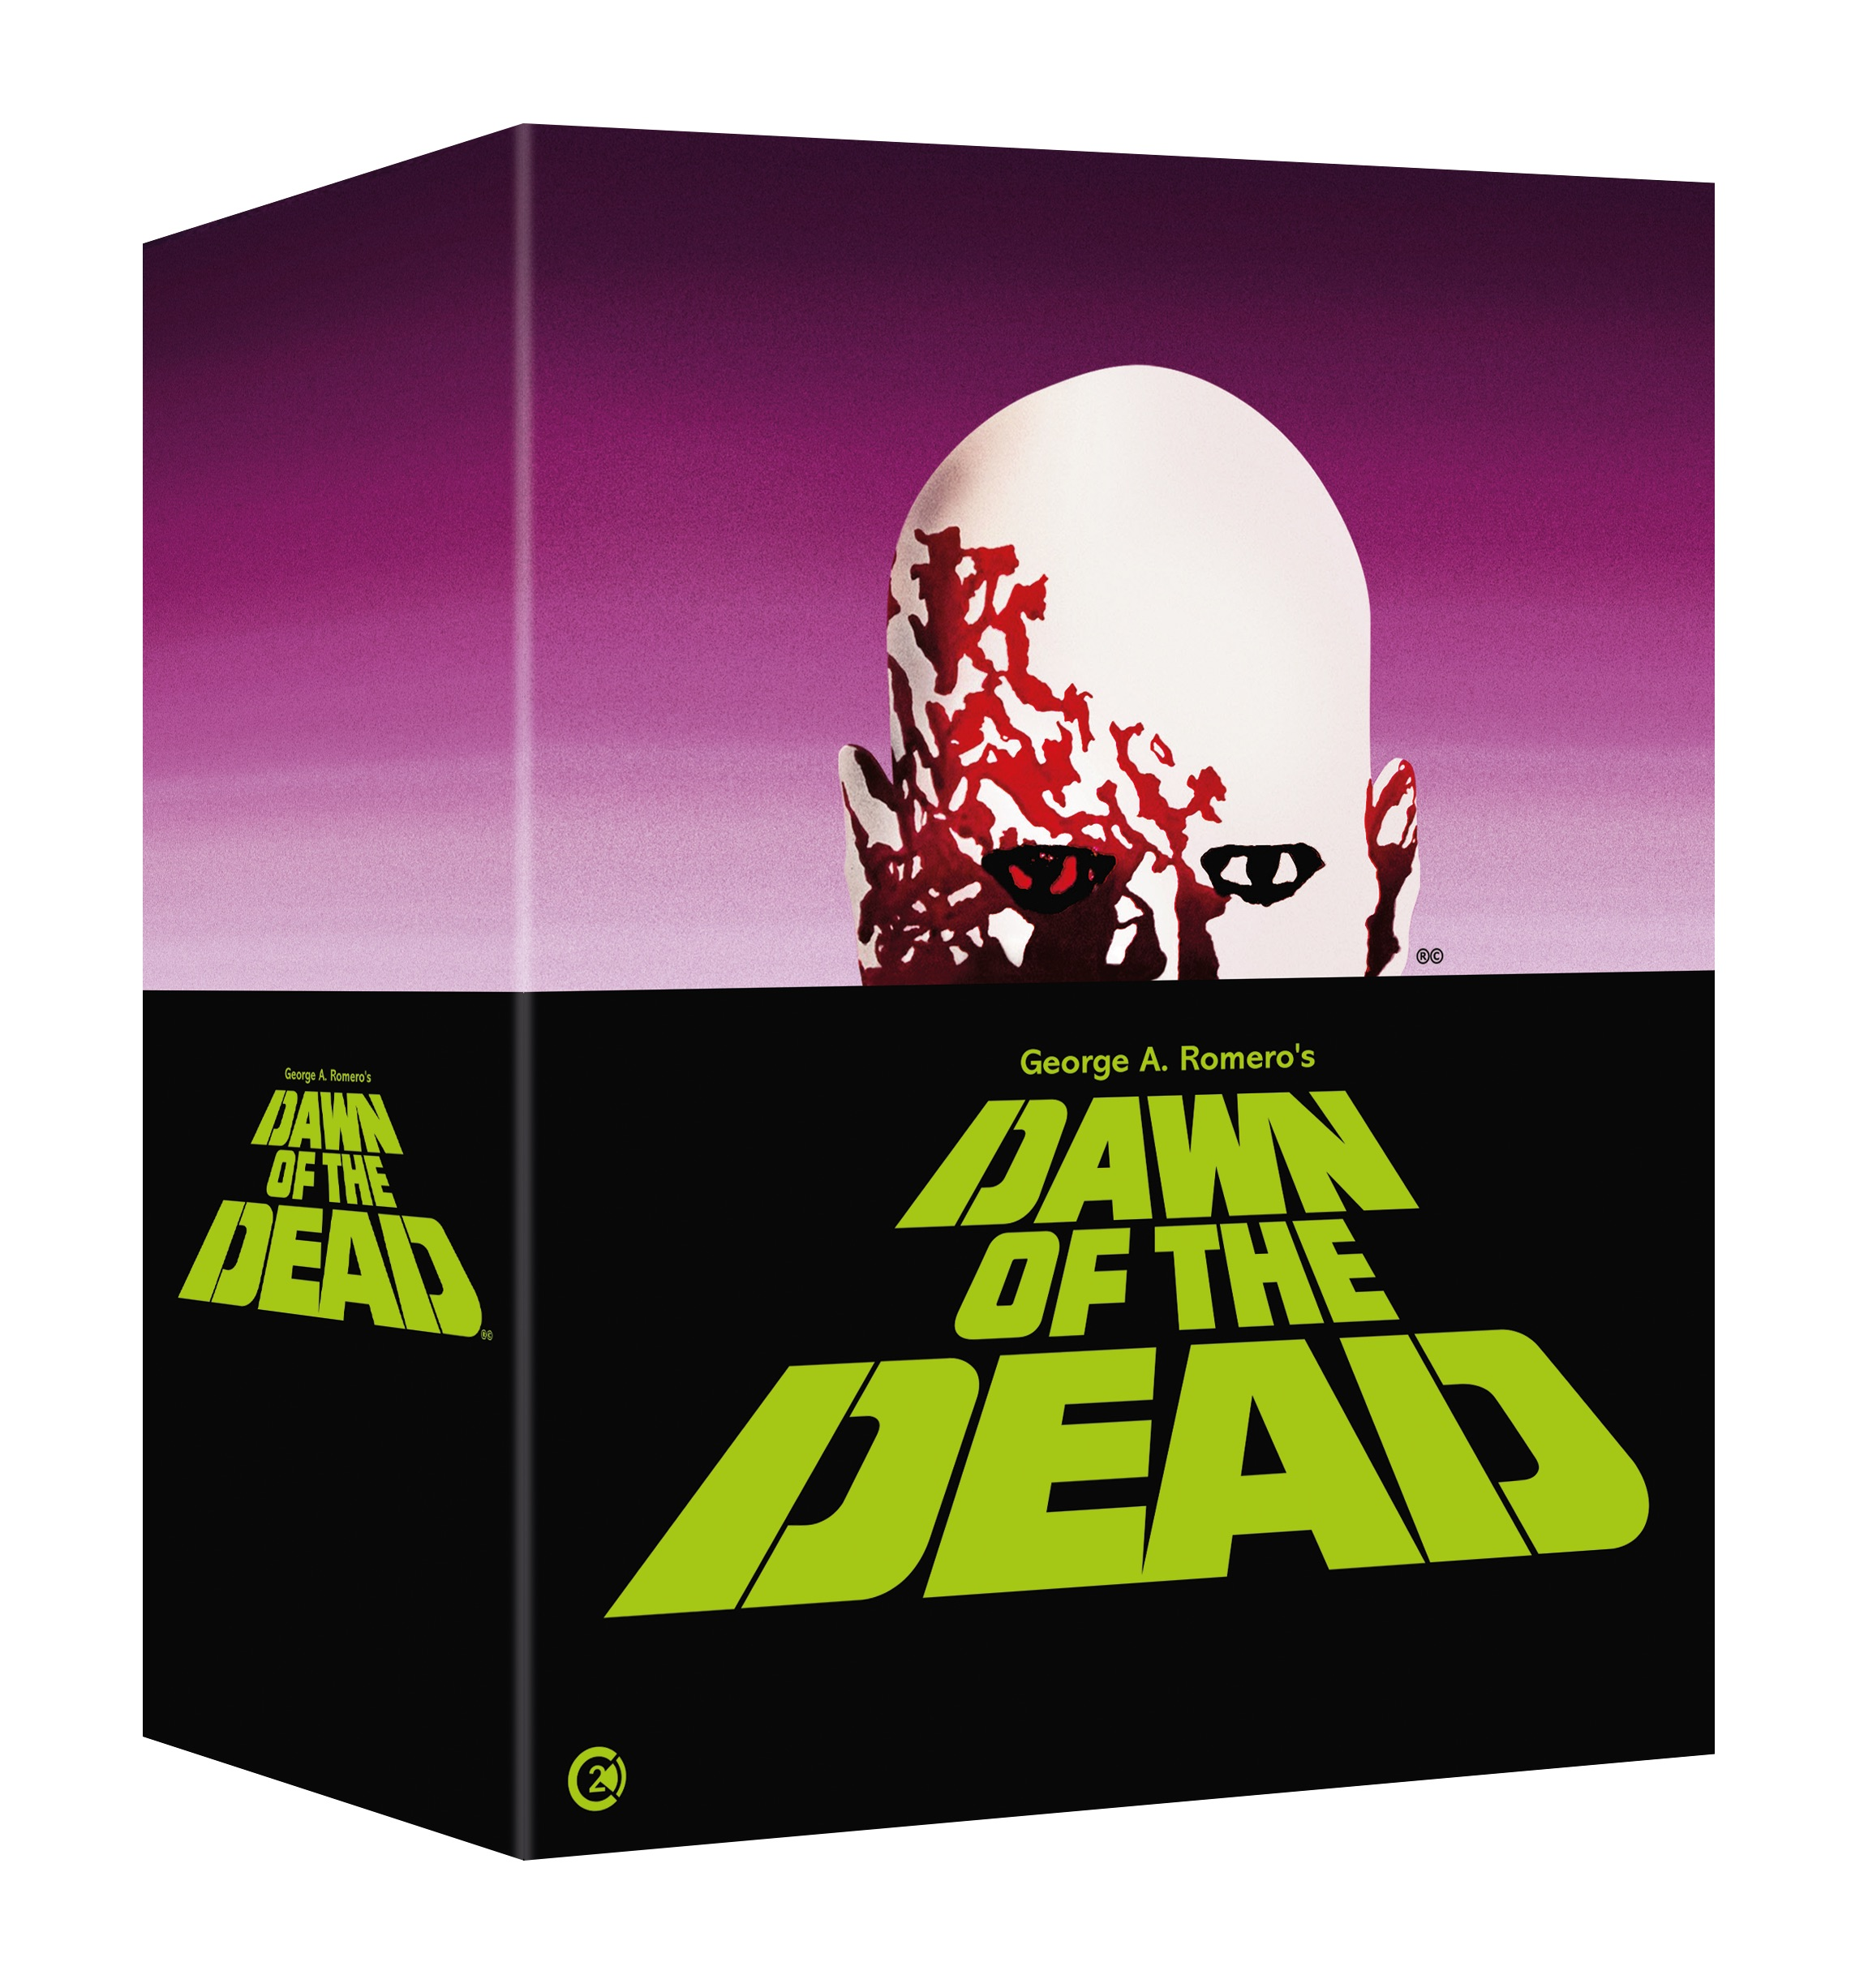 Dawn Of The Dead 'the zombie movie to end 'em all' rises again in 'Limited Edition 4K UHD' and 'Limited Edition Blu-ray'